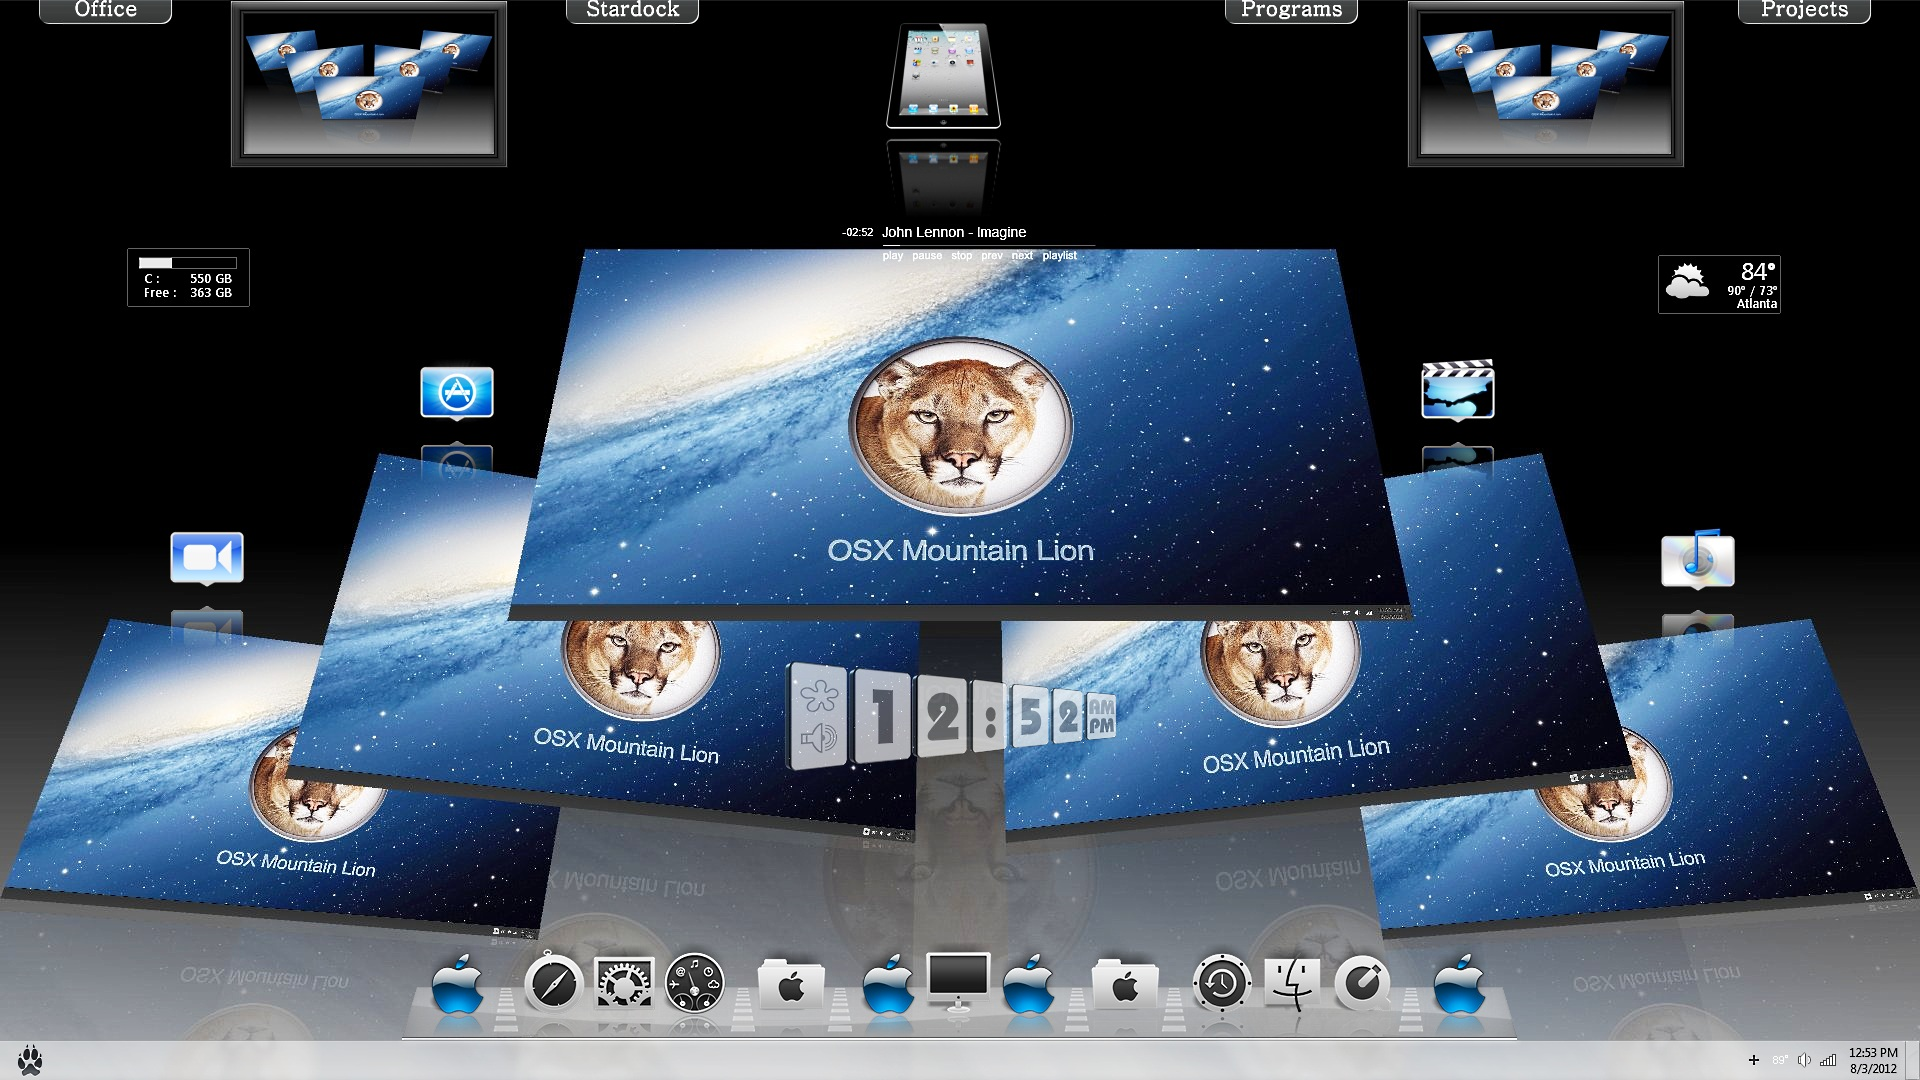 Mac OS X Mtn Lion 3D